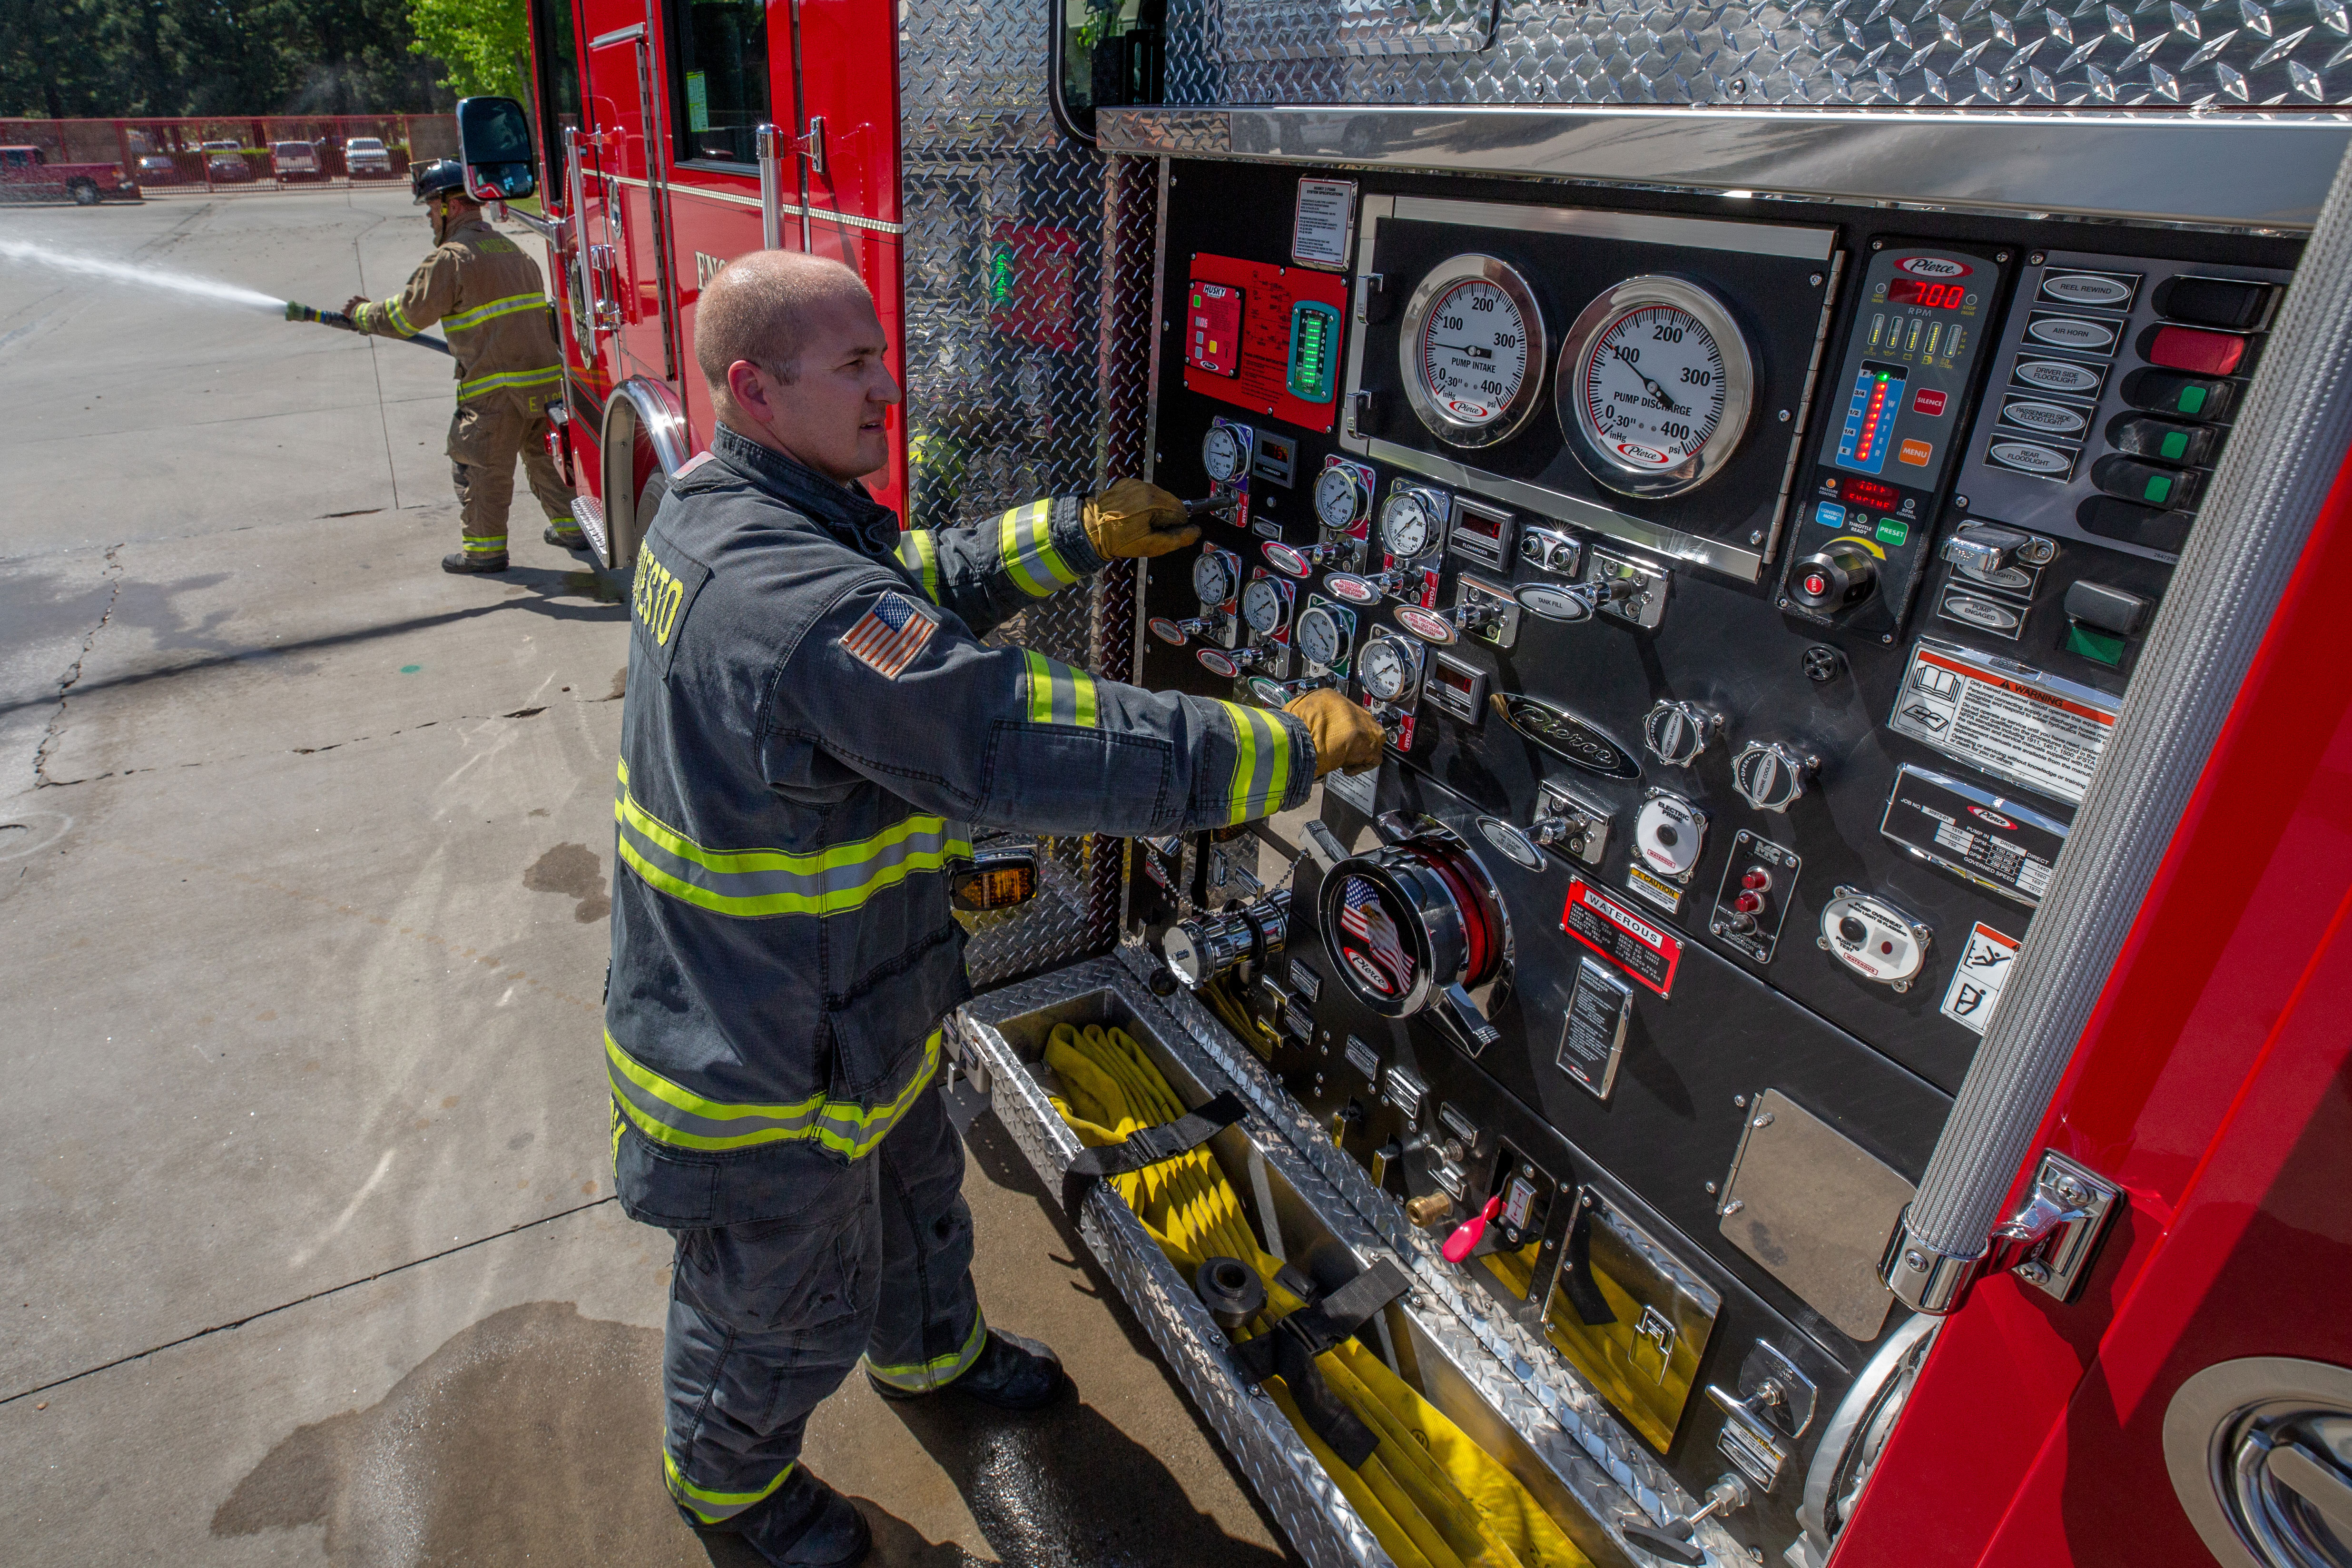 Pierce Pumper Fire Truck Pump Panel